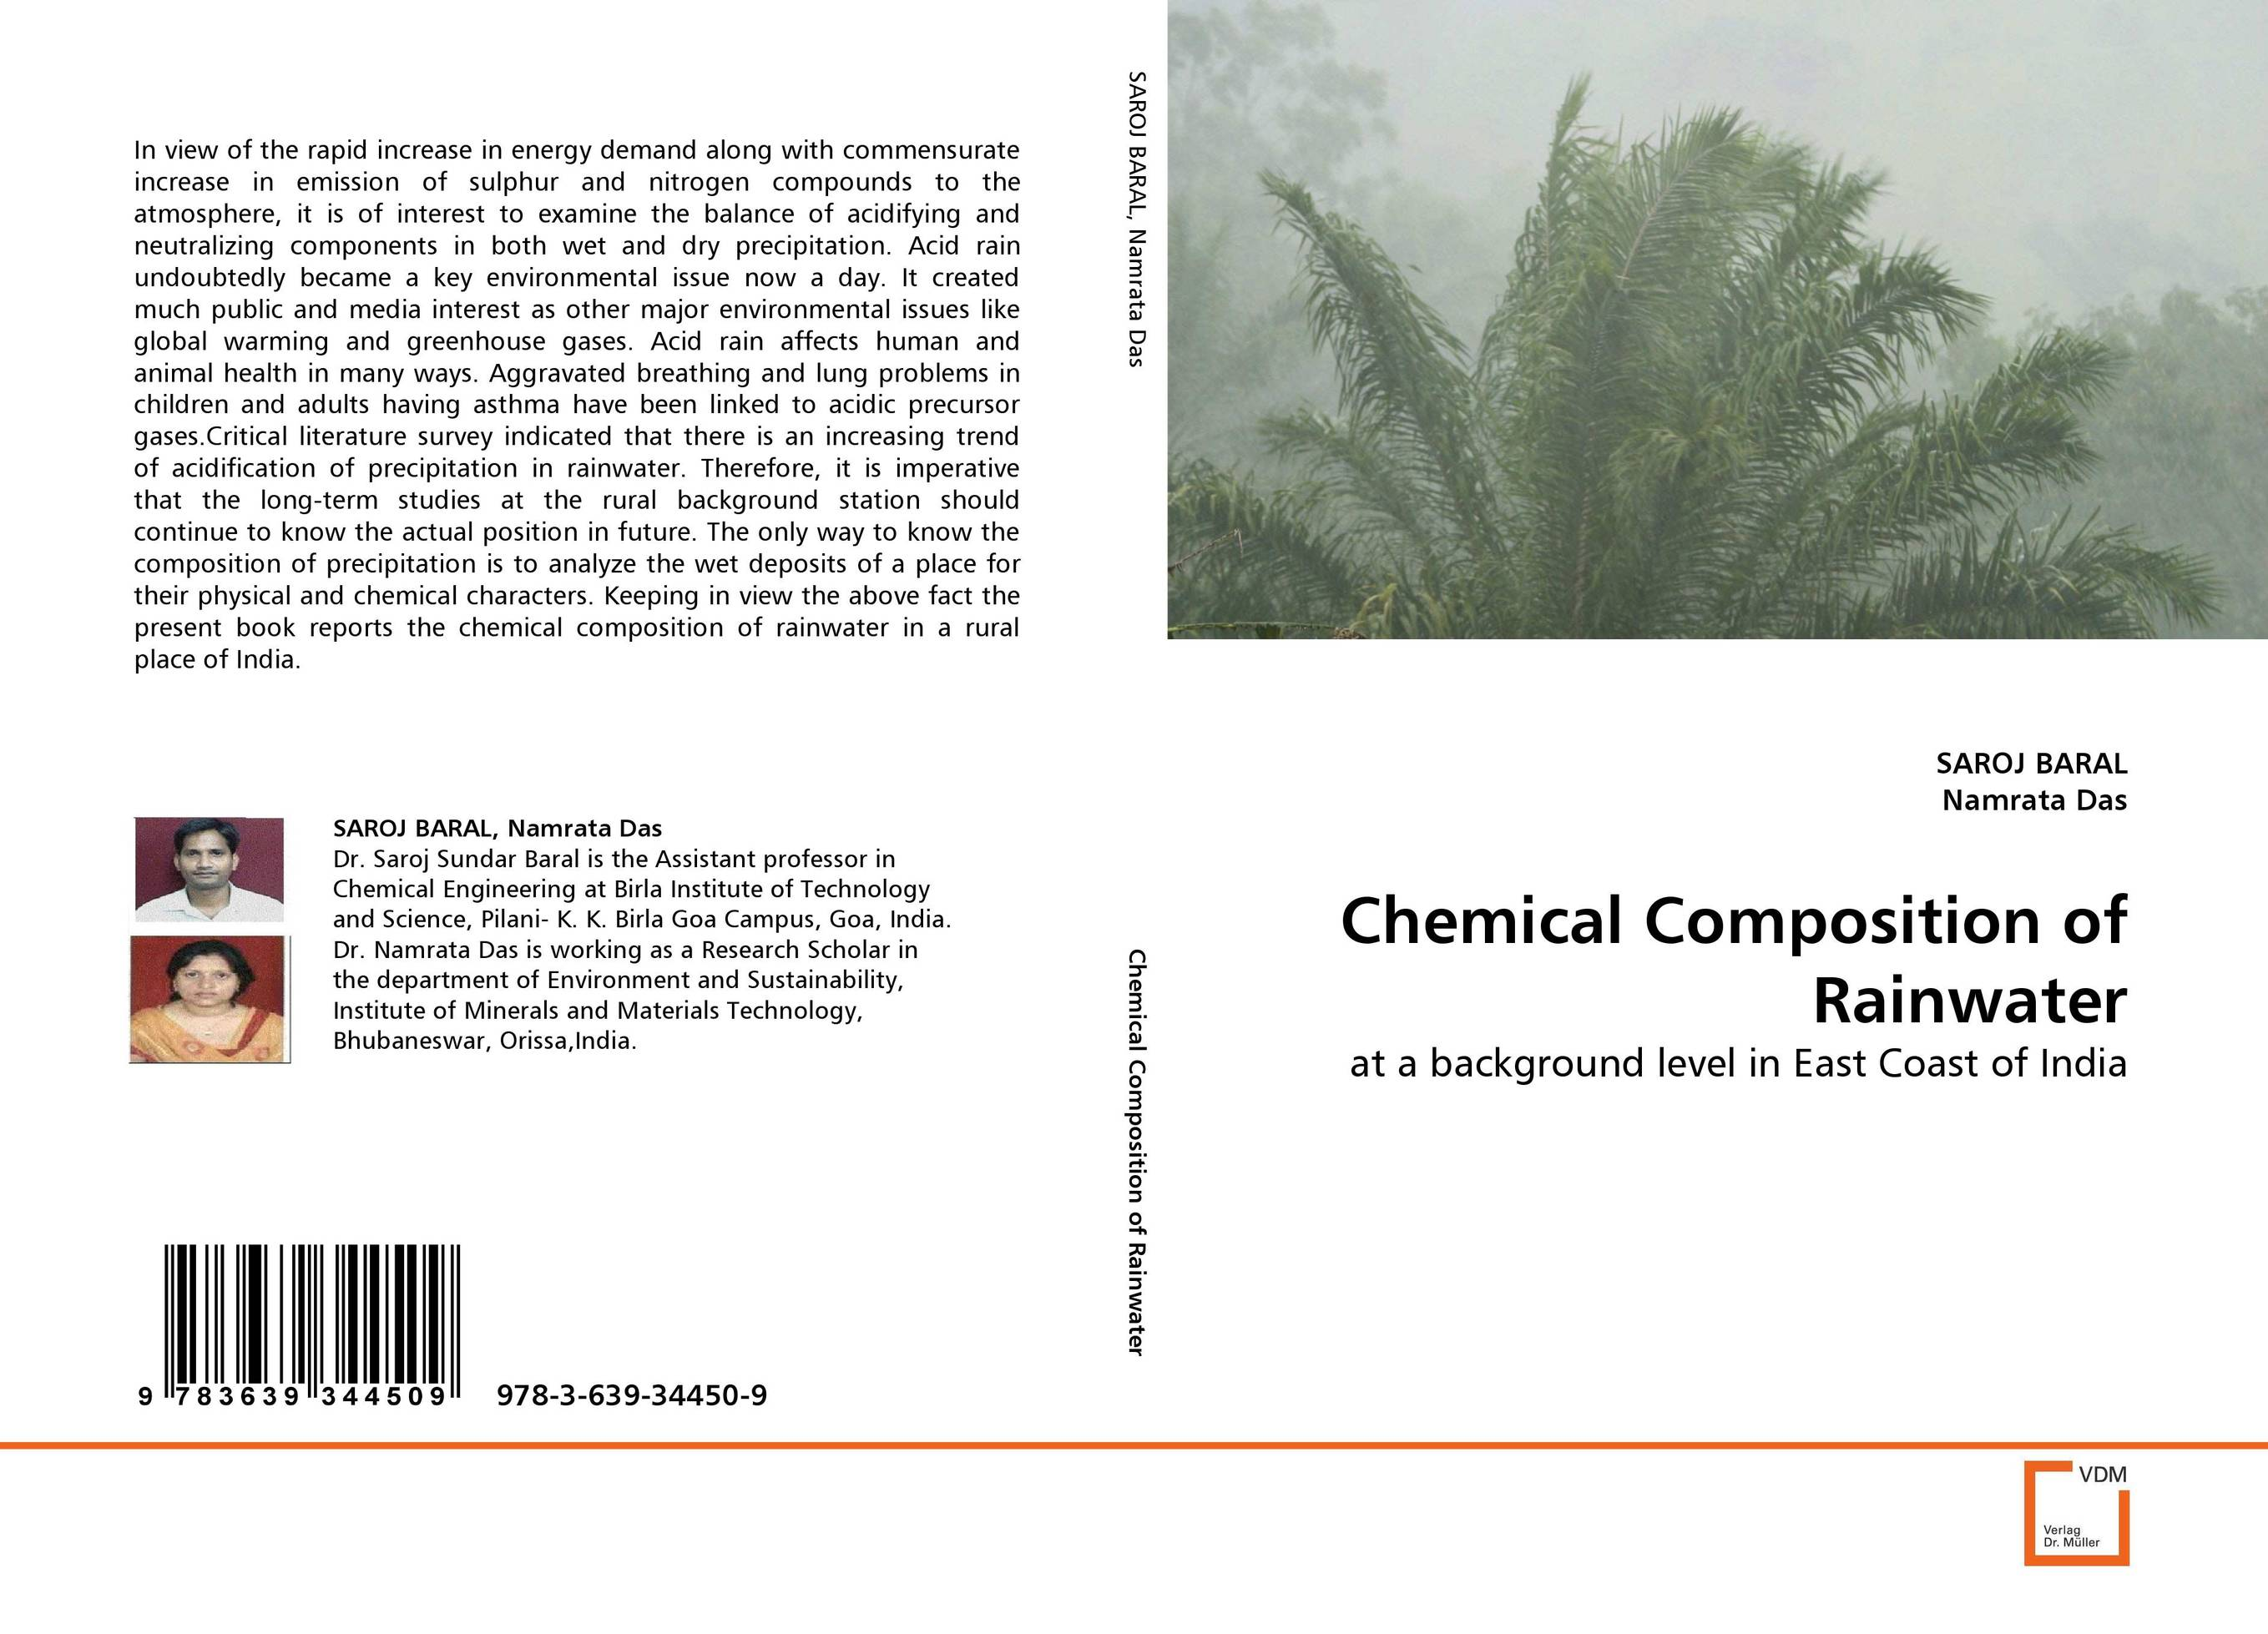 Chemical Composition of Rainwater sampling and analysis of environmental chemical pollutants a complete guide